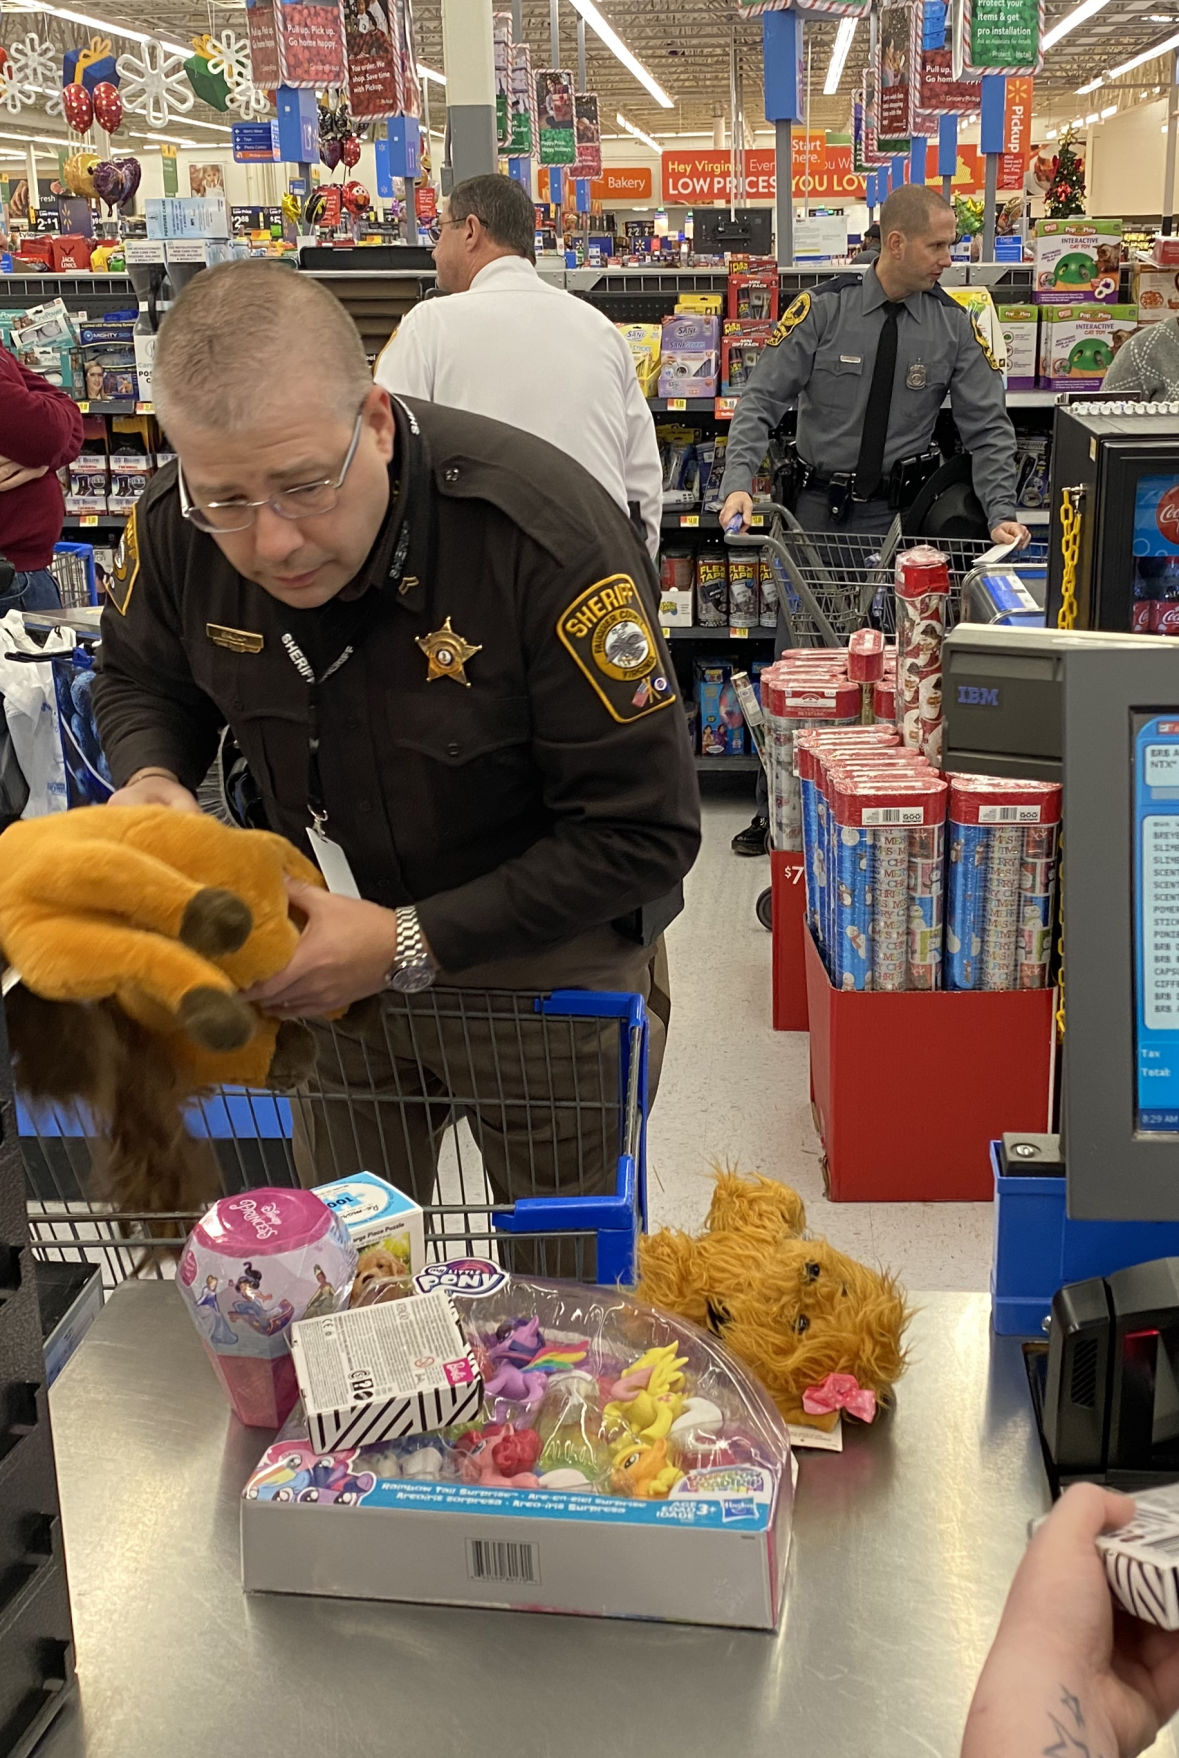 photo_ft_news_shop with a cop 9_121819.jpg